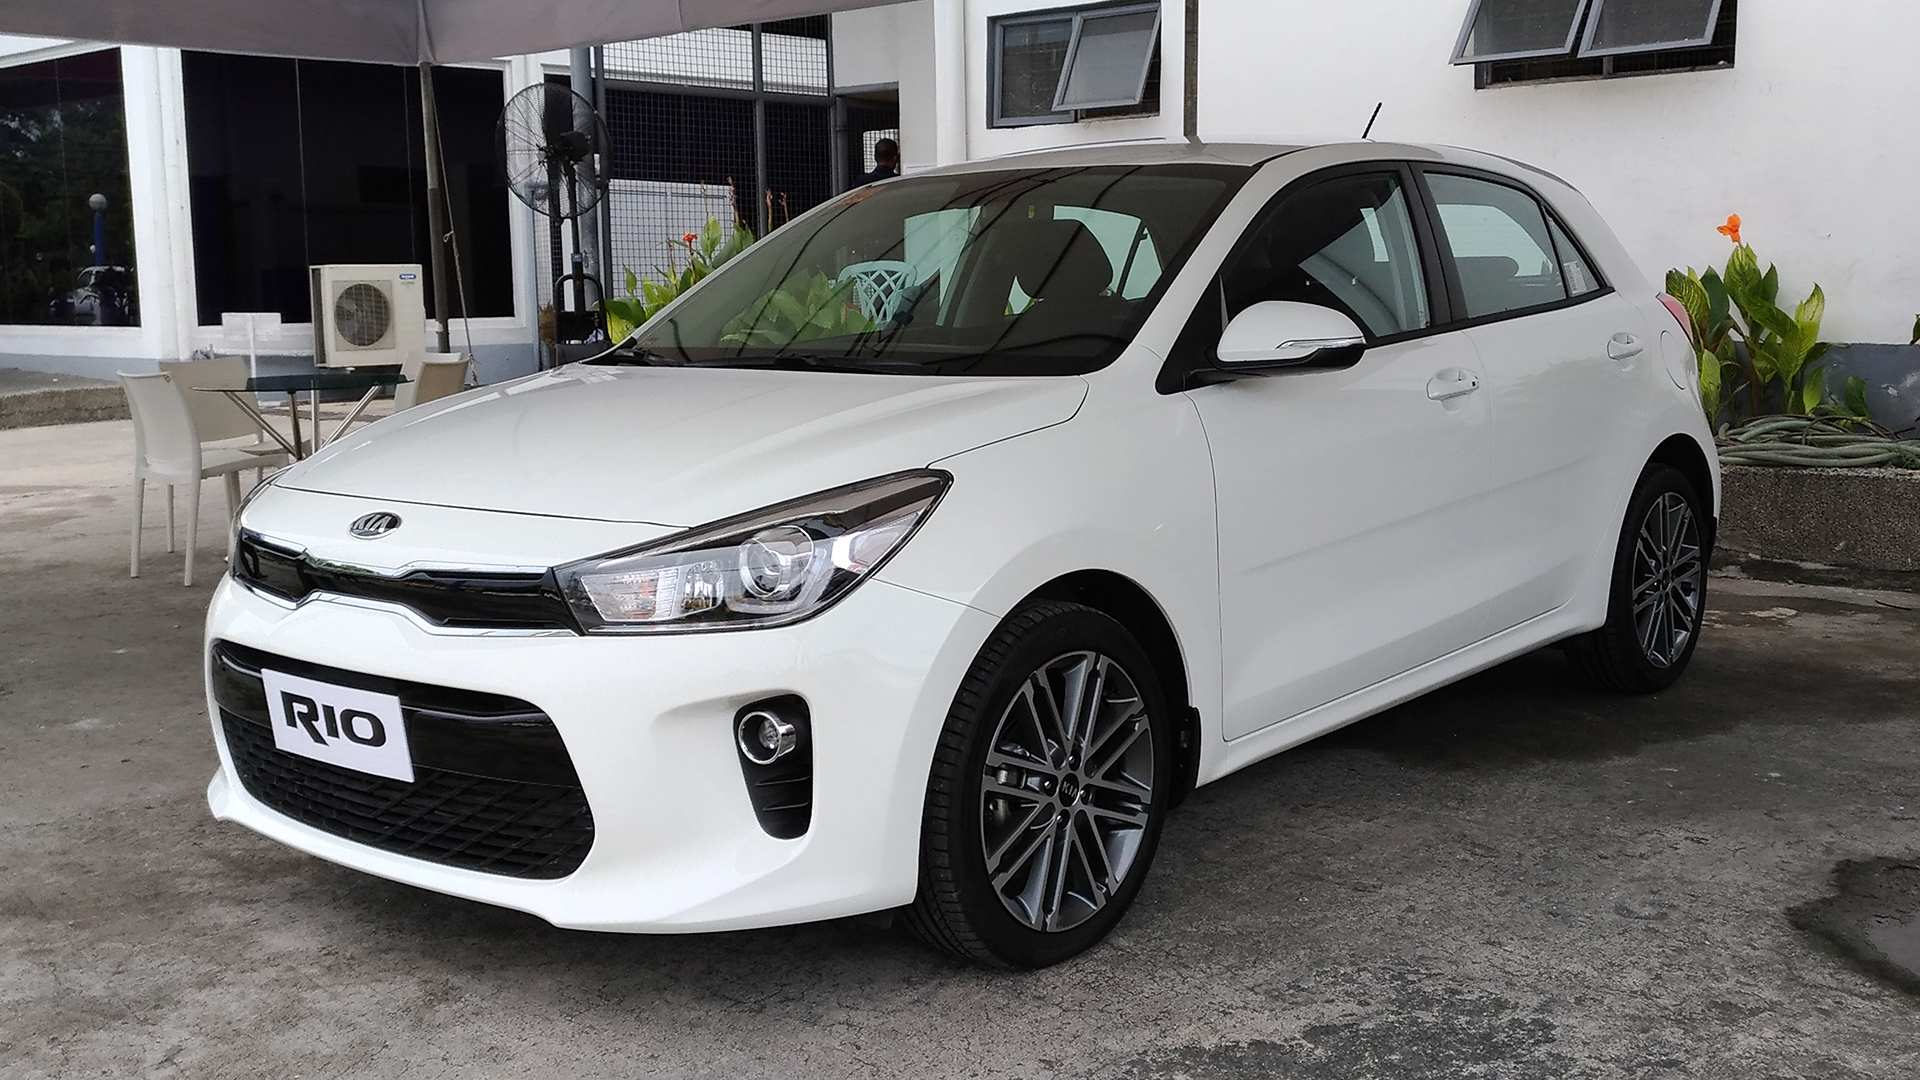 13 Best Kia Rio Quinto 2020 Price And Review